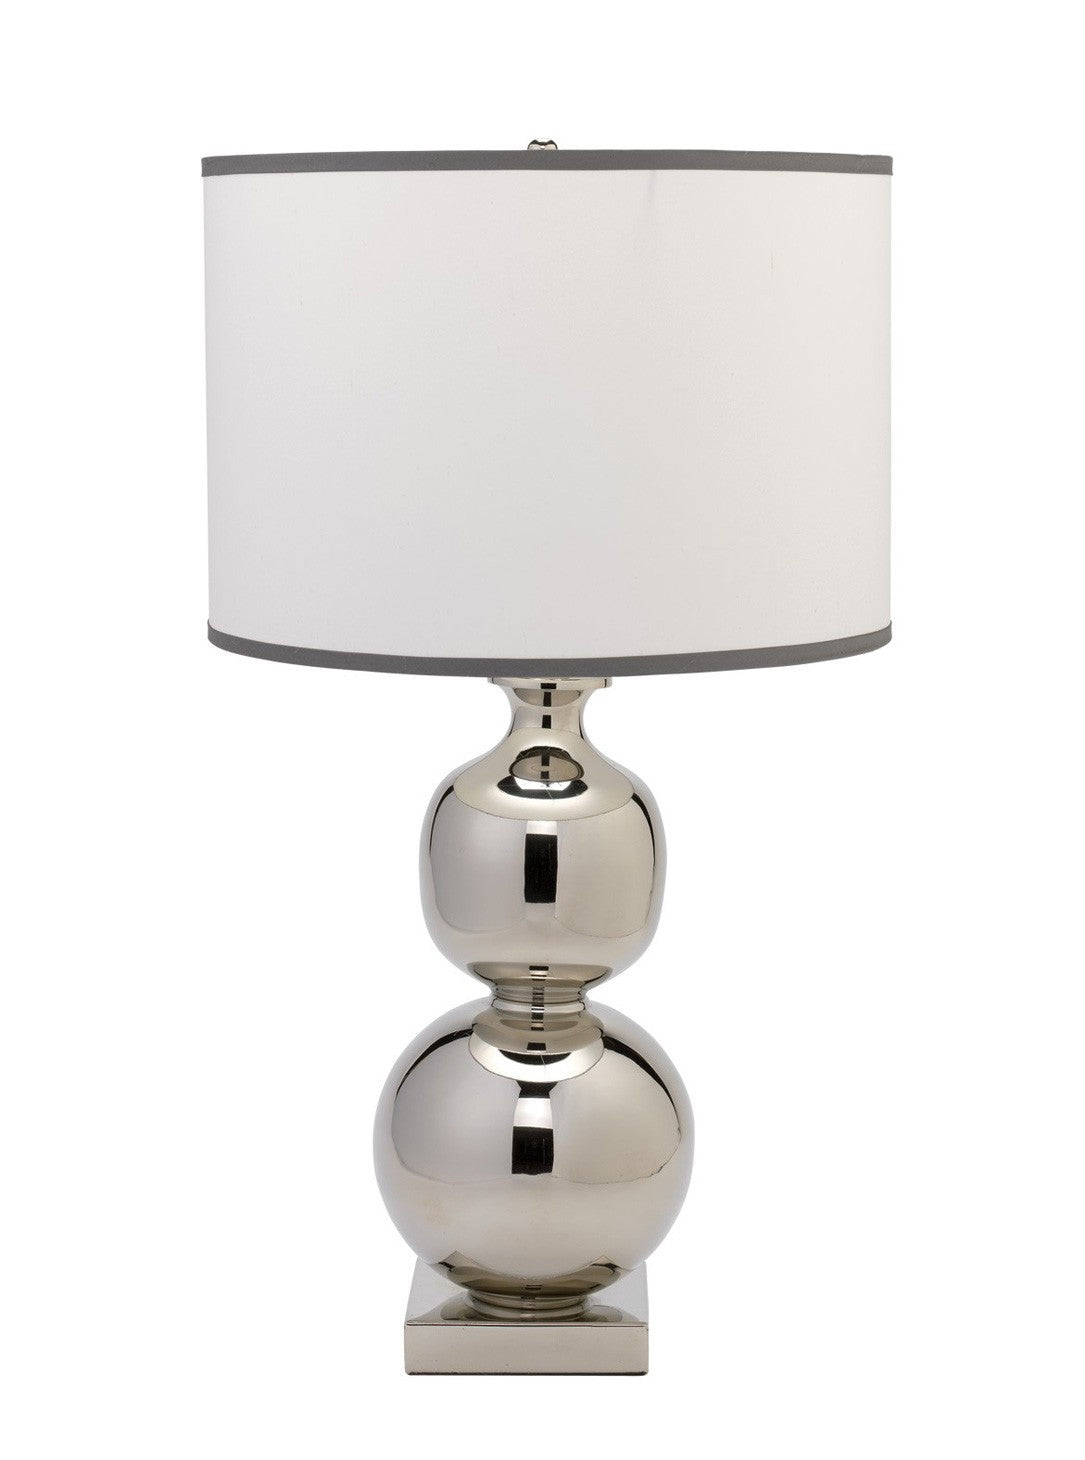 Double ball table lamp jamie young luxe home philadelphia double ball table lamp jamie young geotapseo Gallery